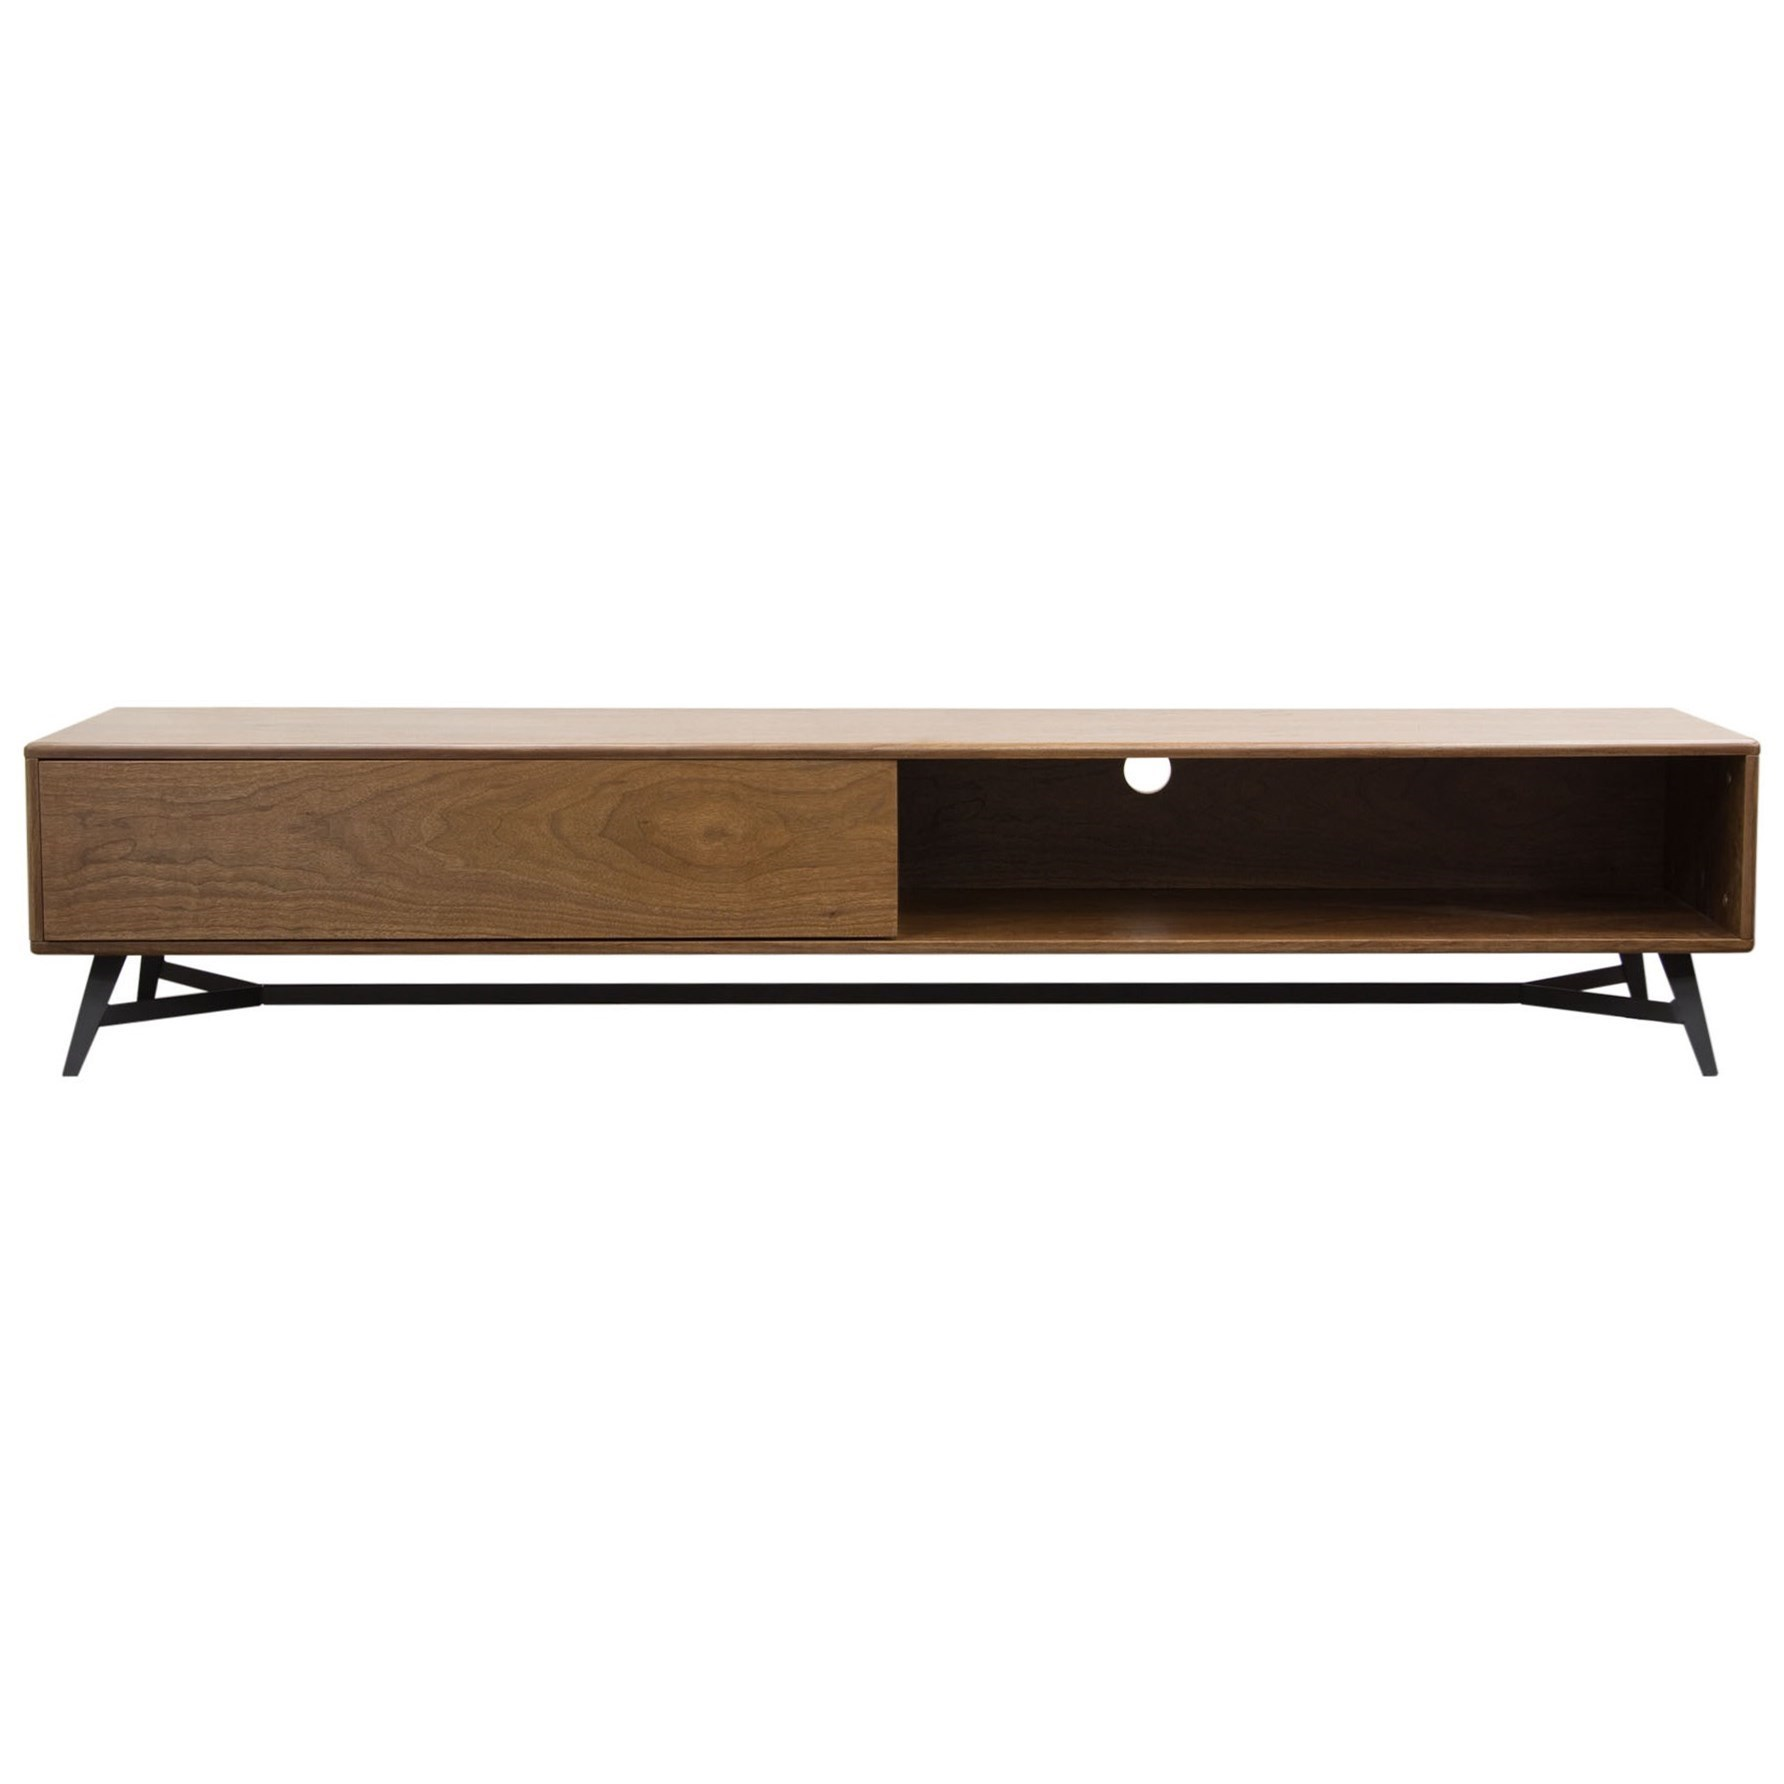 Bon Diamond Sofa Tempo Low Profile Entertainment Cabinet | Boulevard Home  Furnishings | TV Stands